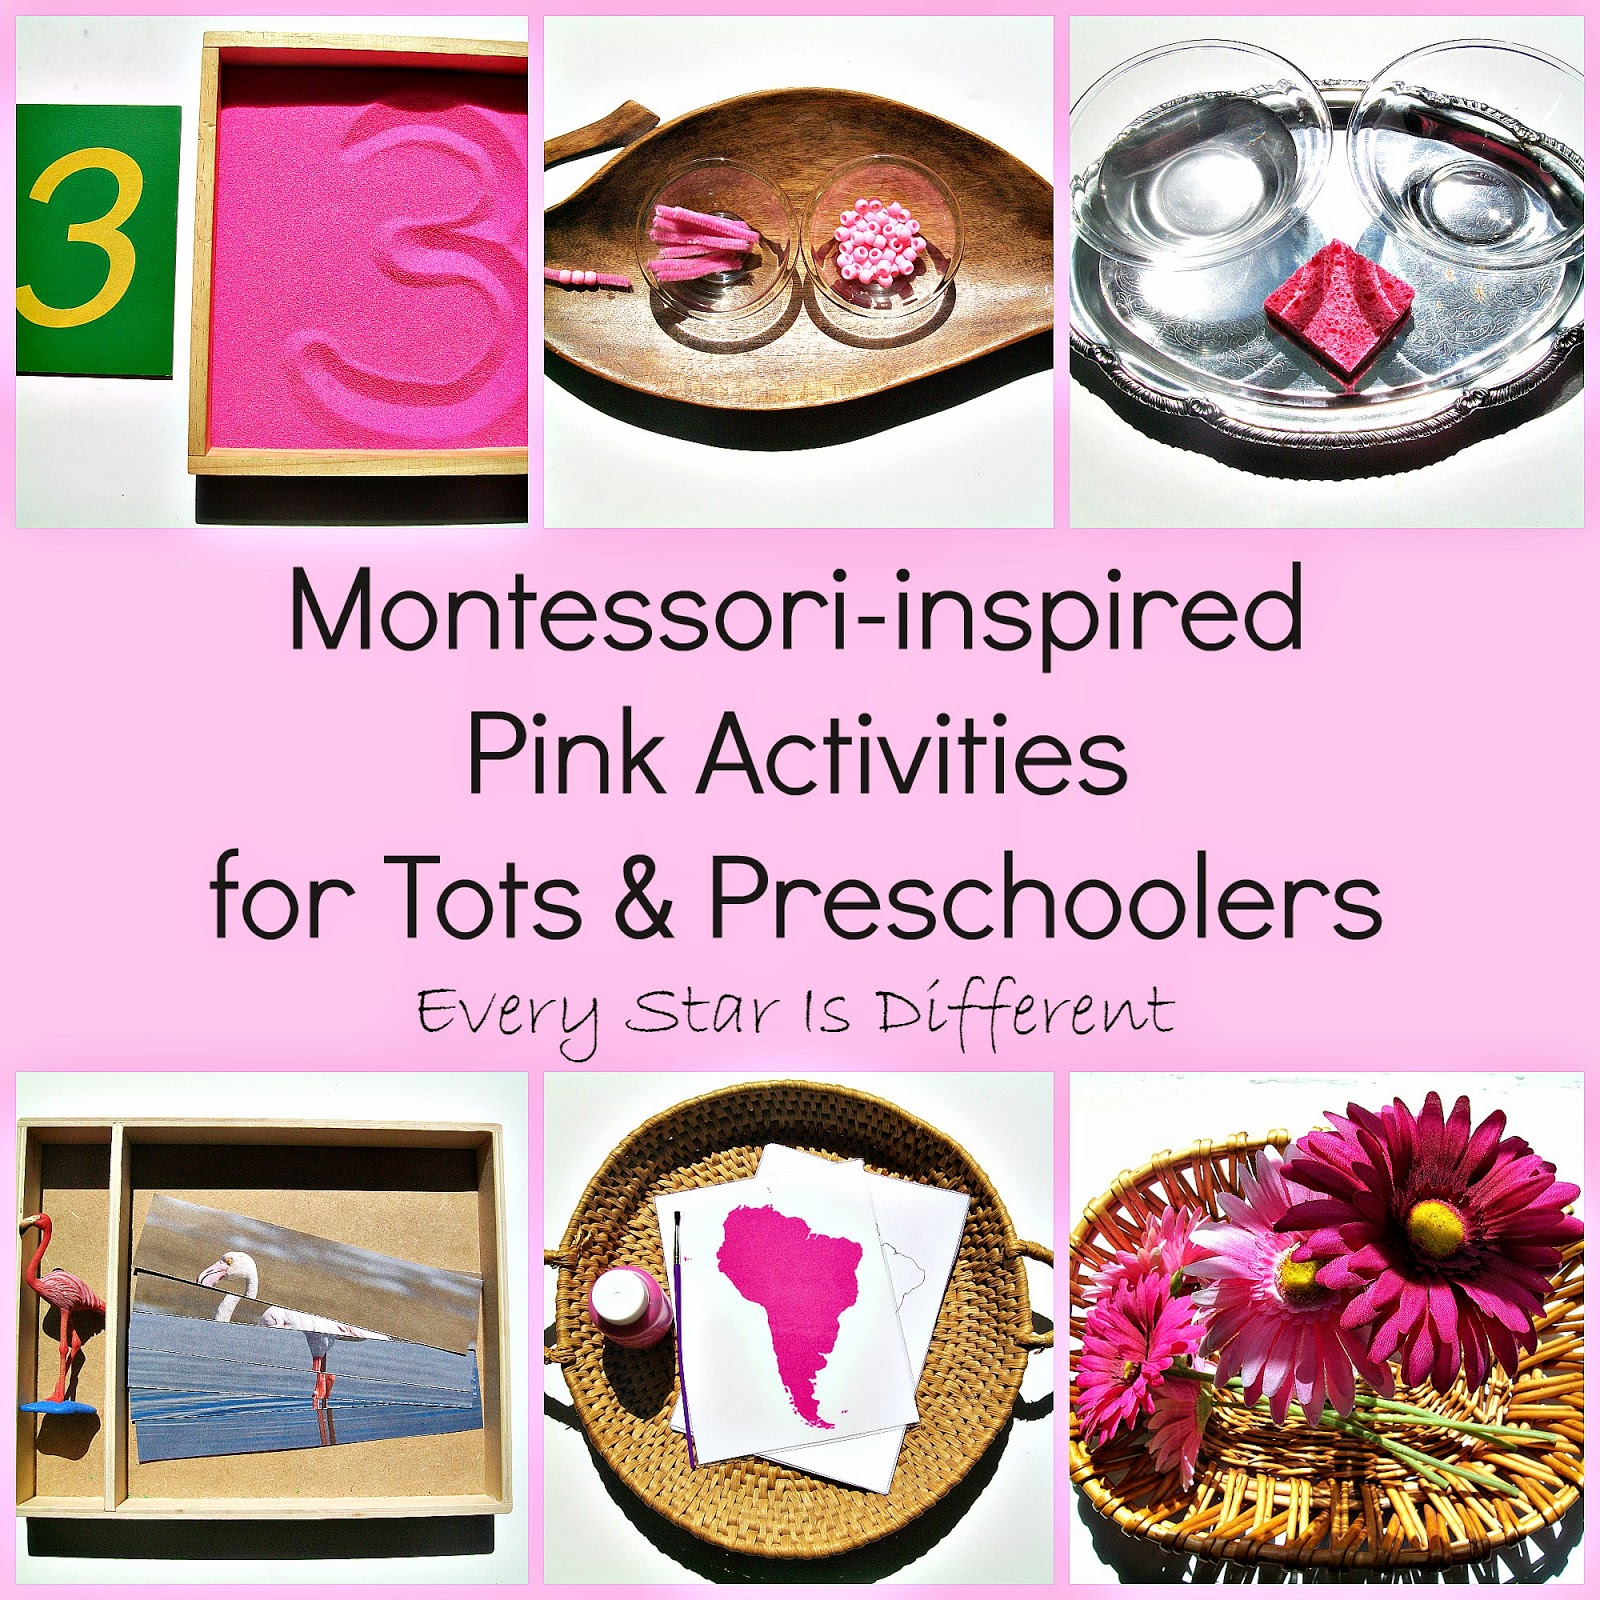 Montessori-inspired Pink Activities for Tots an Preschoolers with Free Printables